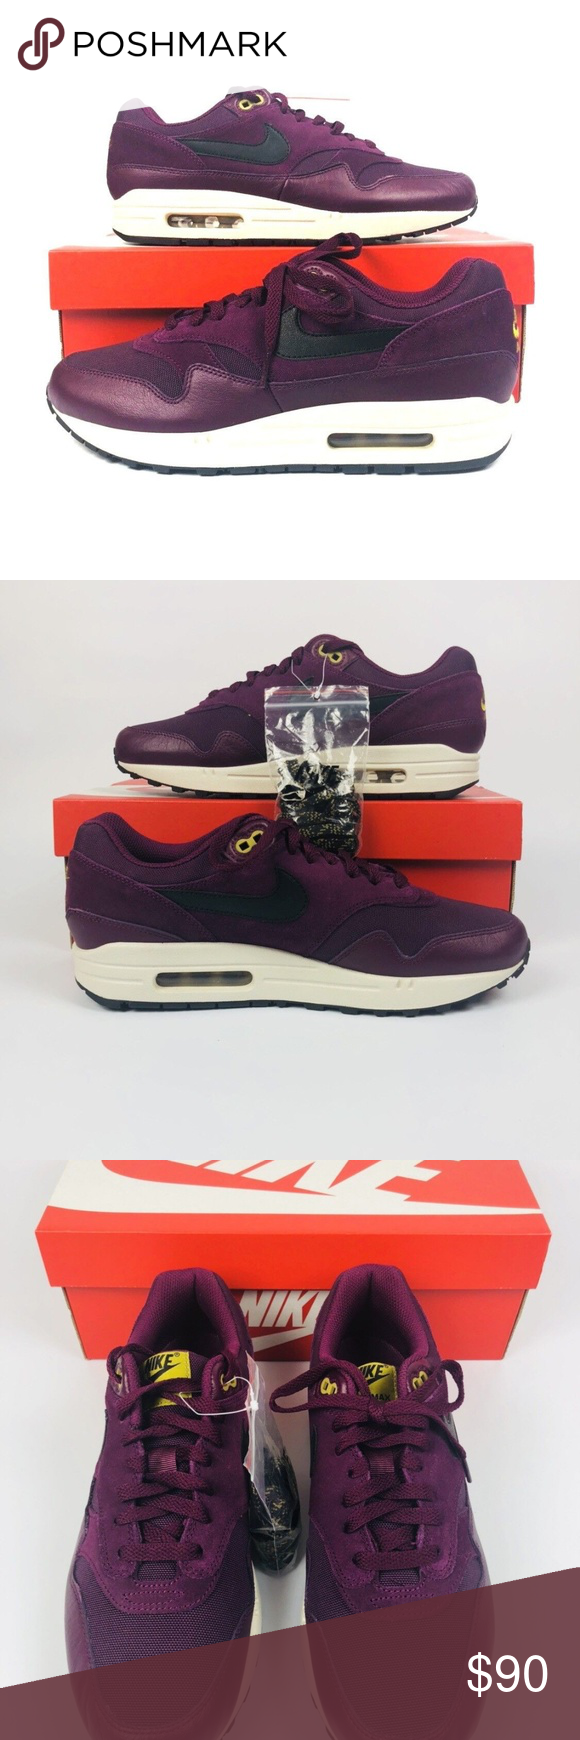 info for 21e28 b7c20 Nike Air Max 1 Premium Nike Air Max 1 Premium Mens Shoe Sizes Bordeaux Black  Desert Moss 875844 601 New With Box Shipped Double Boxed Nike Shoes Sneakers